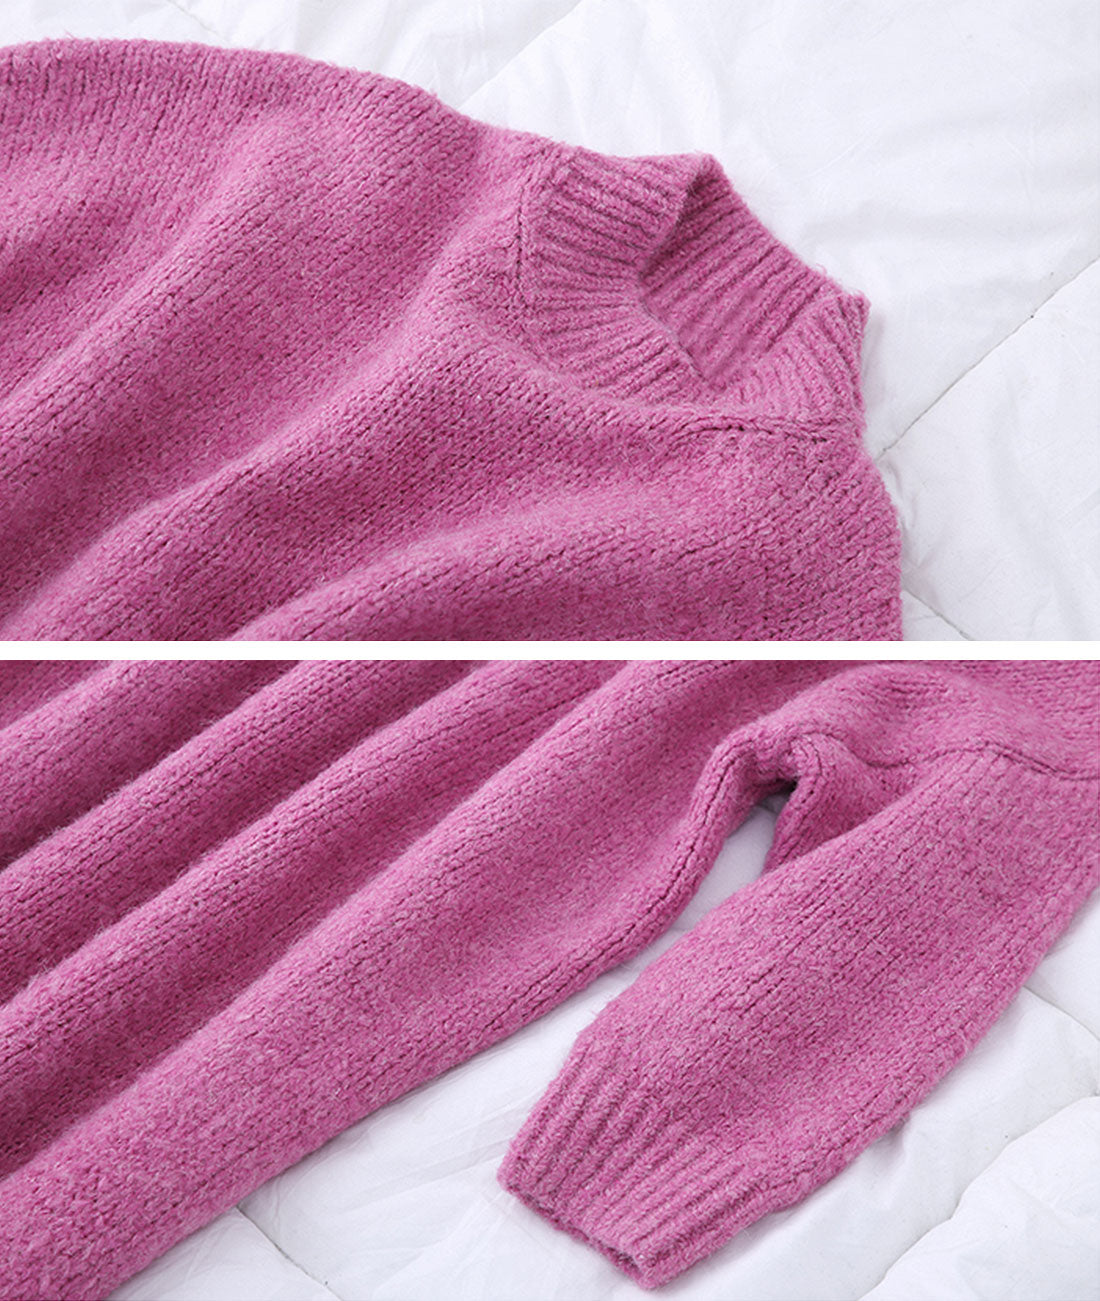 Balloon Style Loose Pink Sweater Dress Details 1